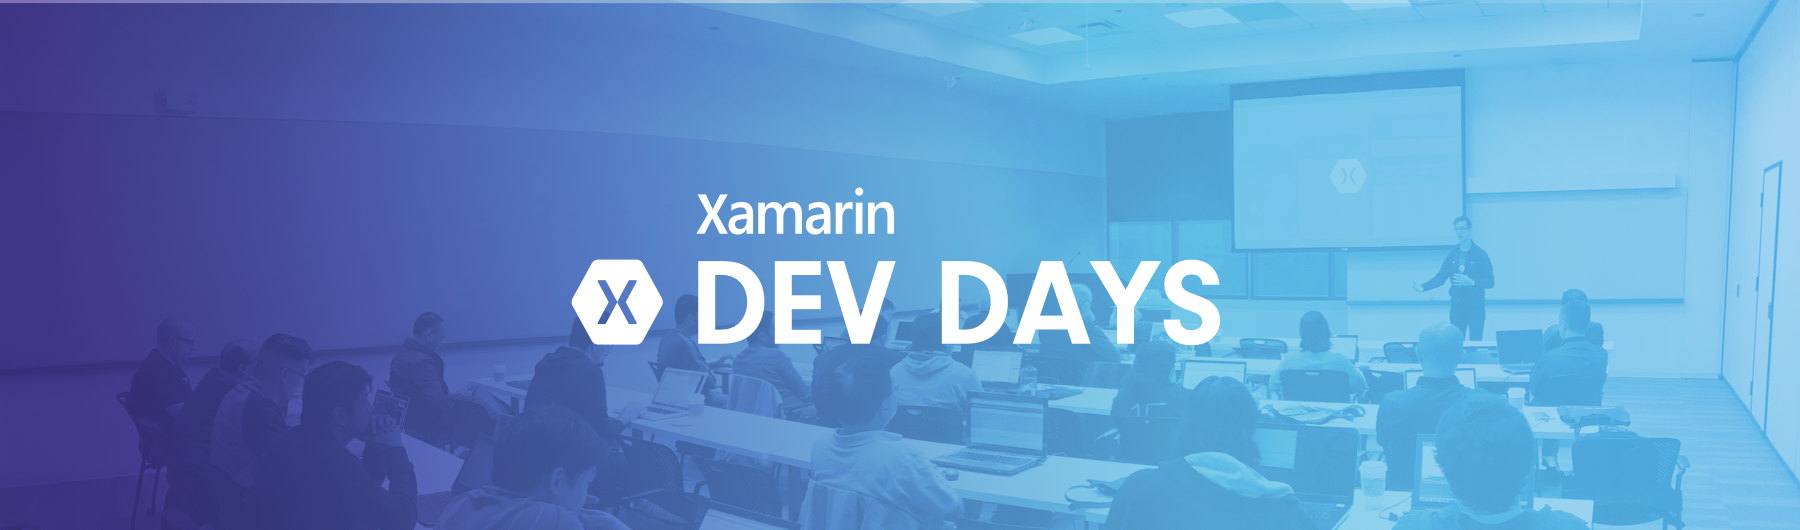 Xamarin Dev Days - Munich